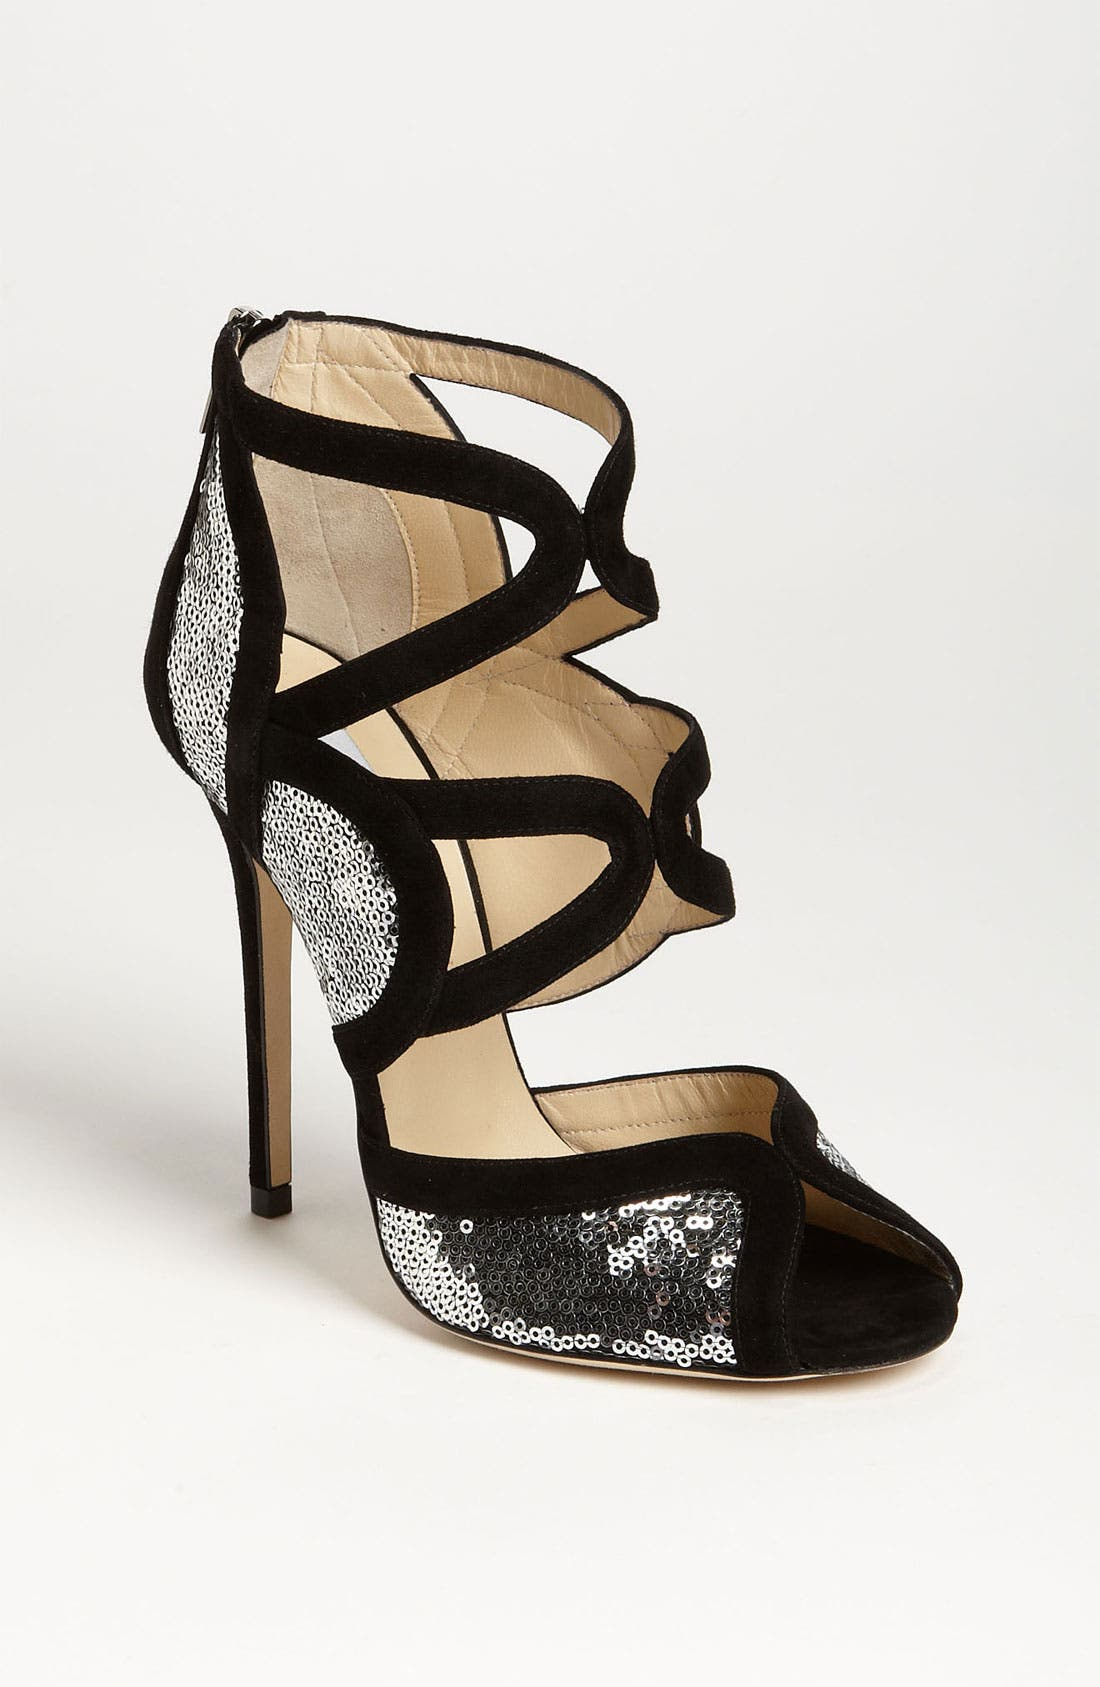 Main Image - Jimmy Choo 'Tempest' Sequin Sandal